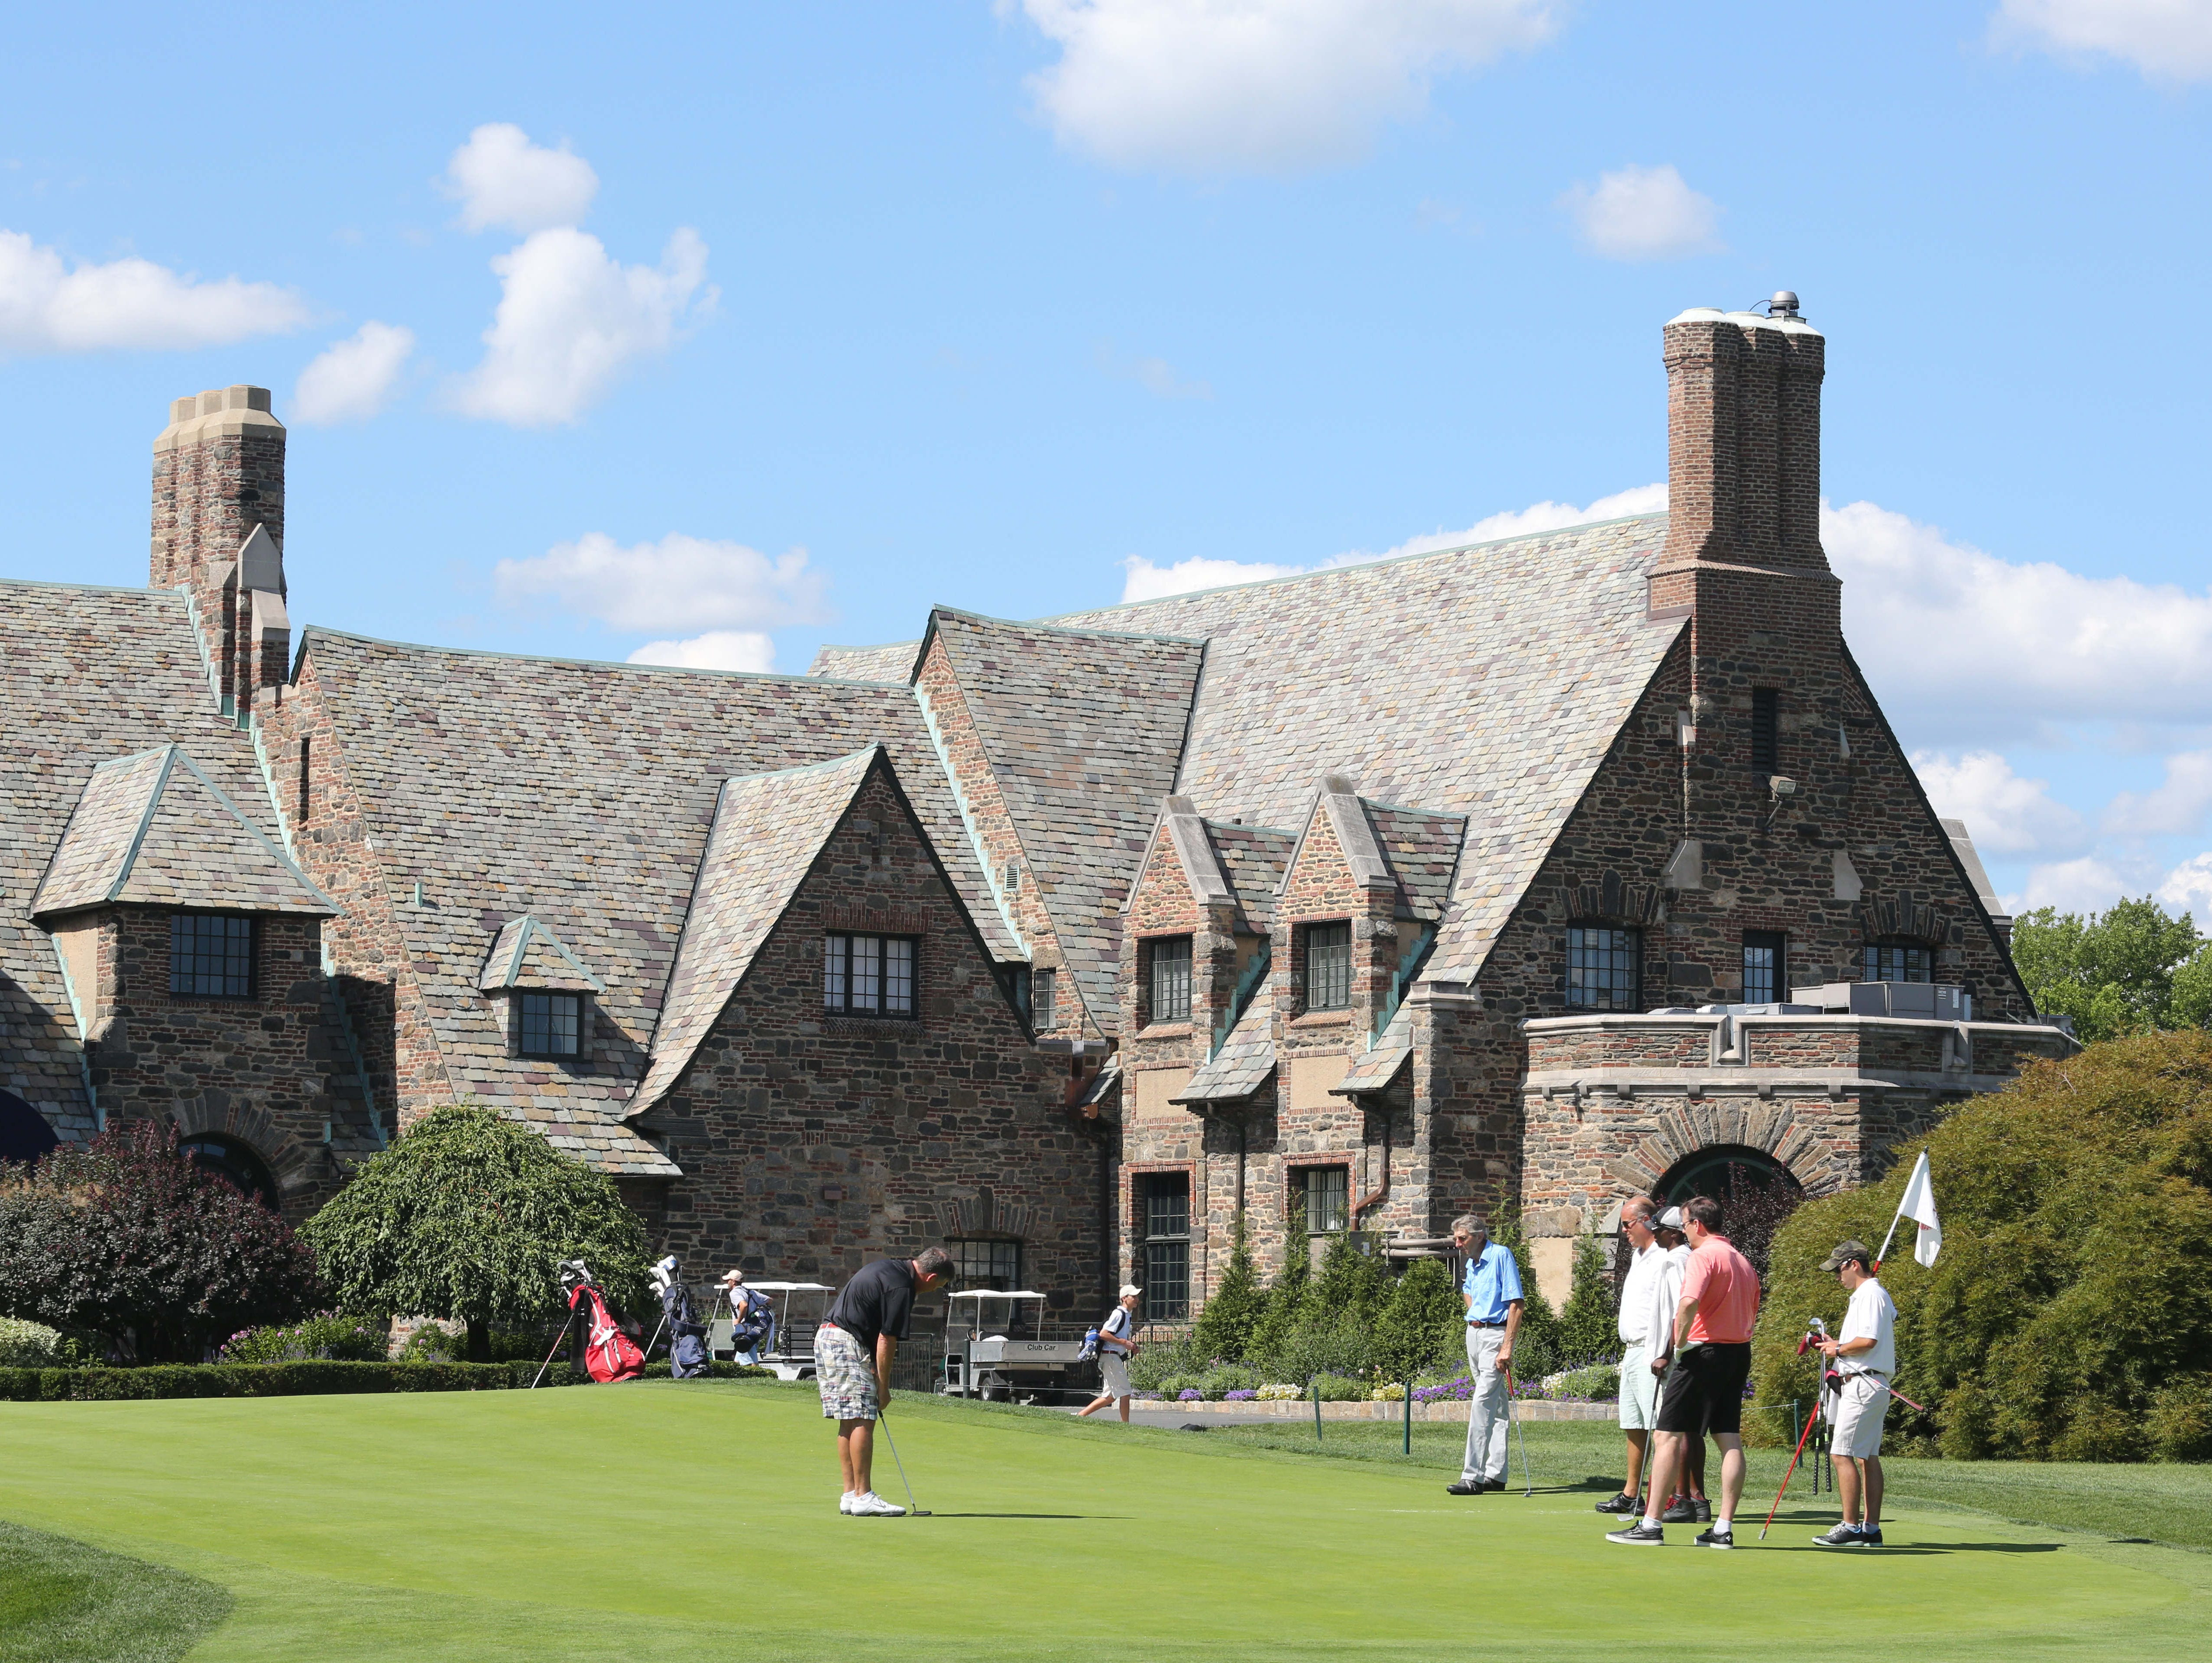 A view of the 10th green on the East Course, with the clubhouse looming in the background, at the Winged Foot Golf Club in Mamaroneck, Aug. 13, 2015. The East Course, recently restored, is hosting the USGA Four-Ball Championship next spring.